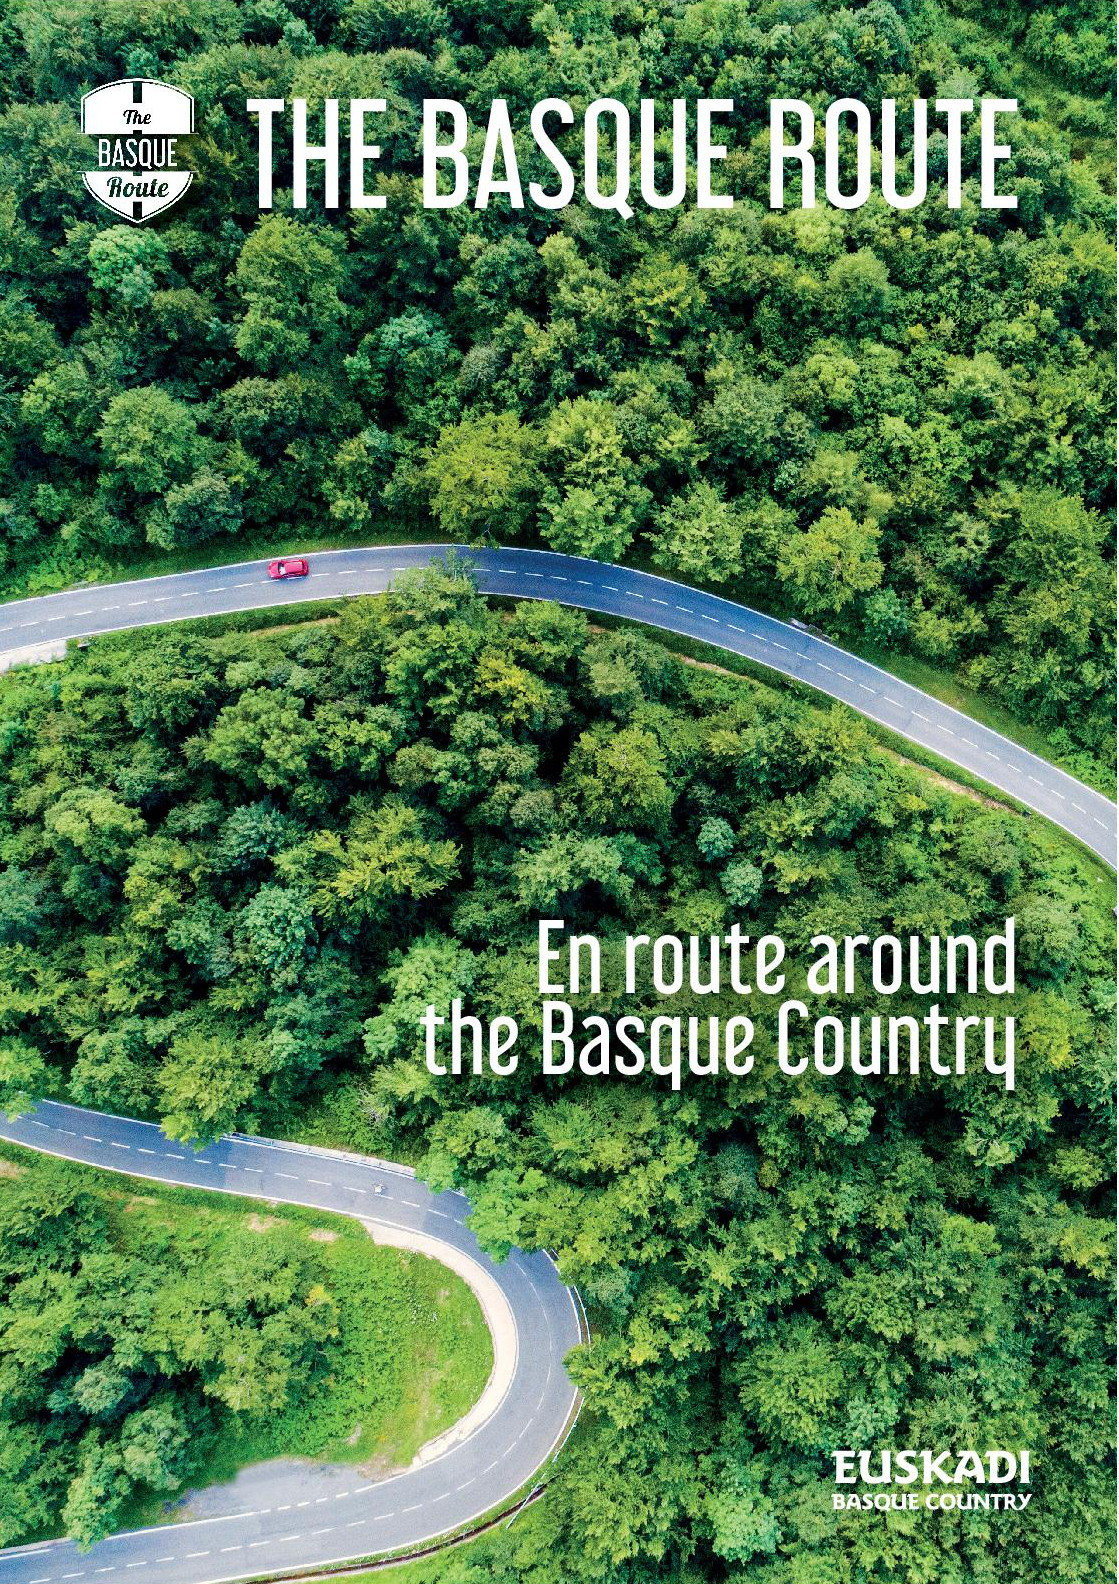 The Basque Route by car or motorbike